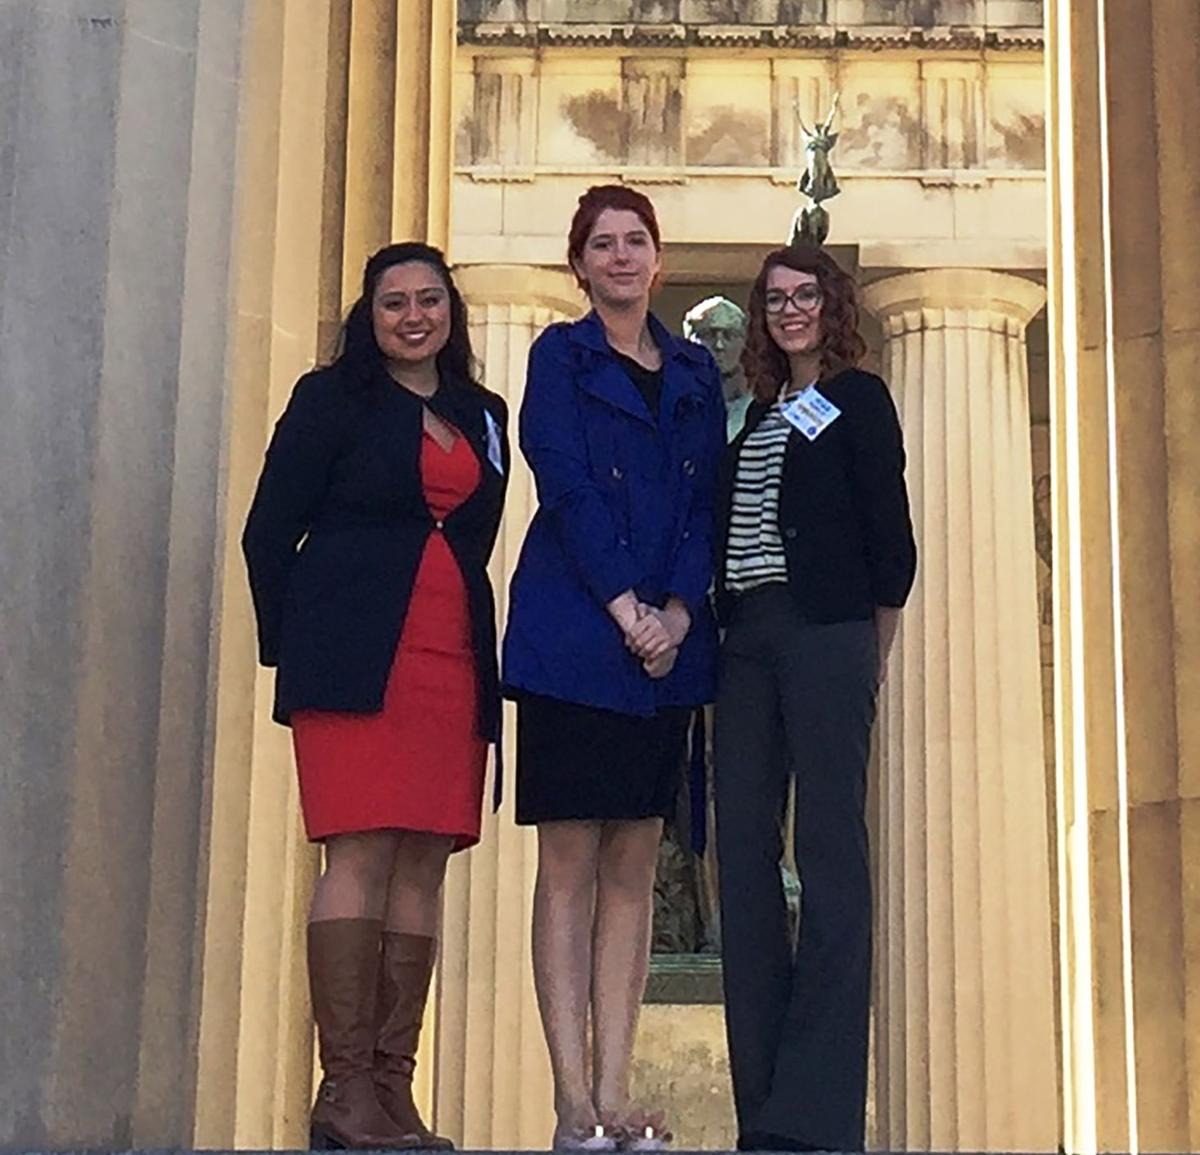 Pictured here (left to right) are Raquel Moskowitz, Melissa Haley, and Megan Thompson at Capitol Hill in Nashville for the Tennessee Intercollegiate State Legislature.  Photo courtesy of Lee University's Public Relations office